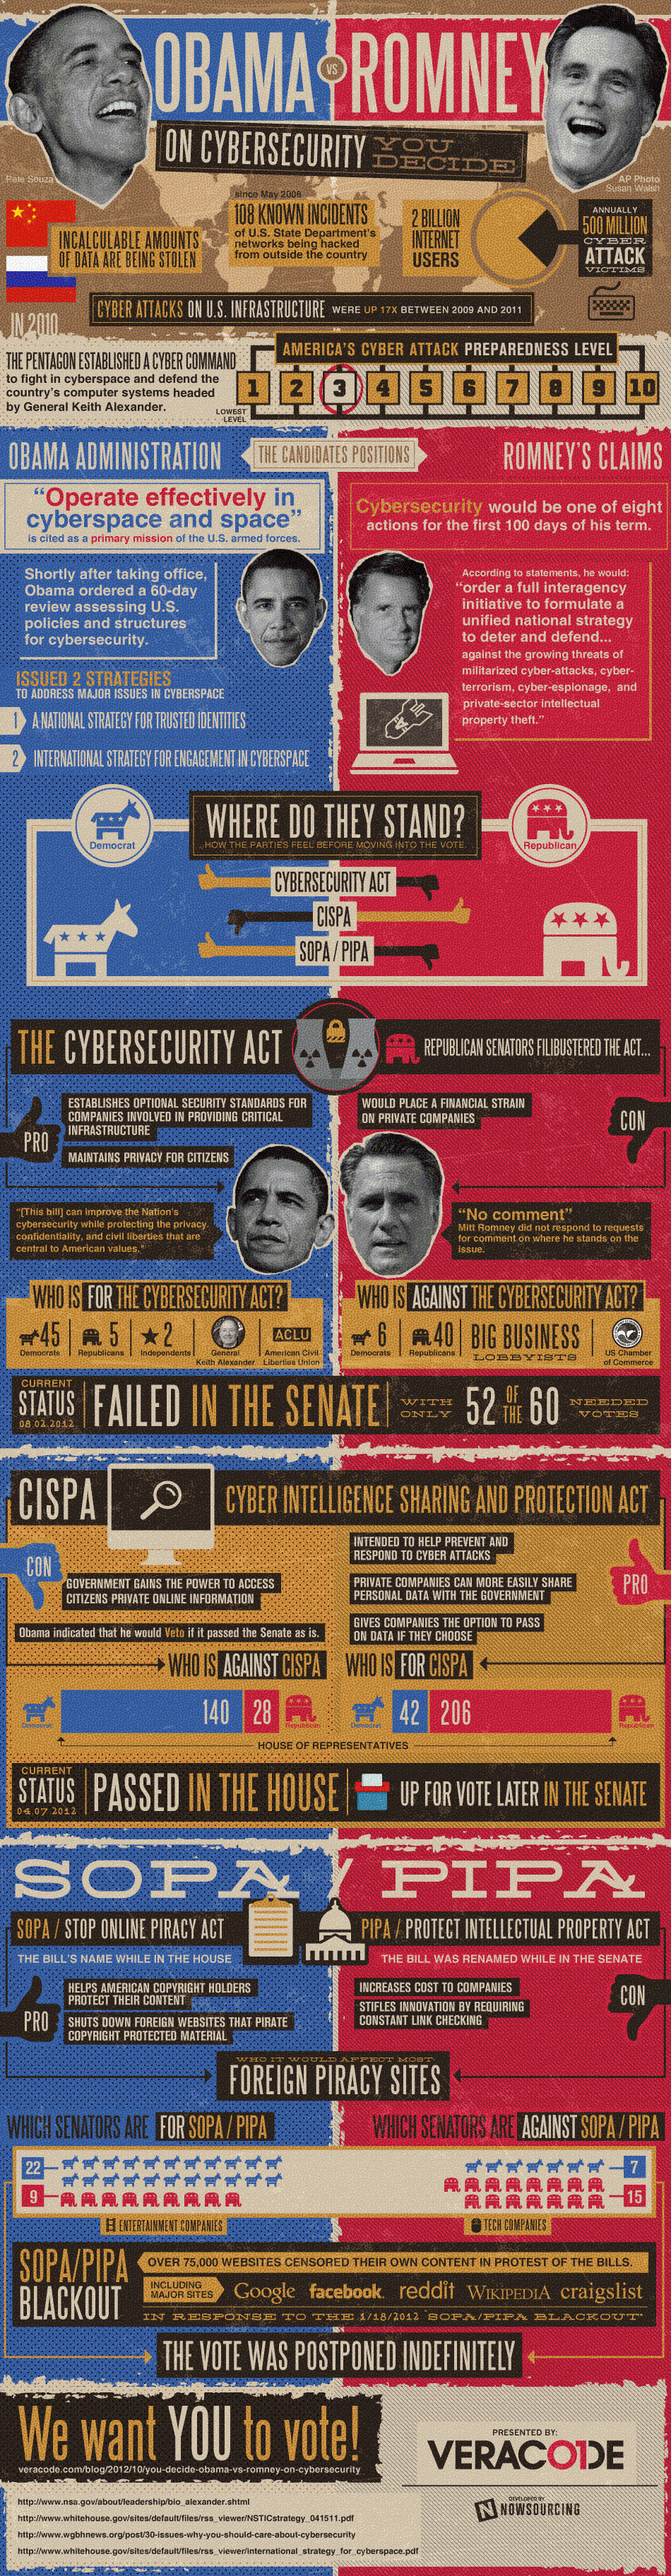 Obama vs Romney on Cybersecurity